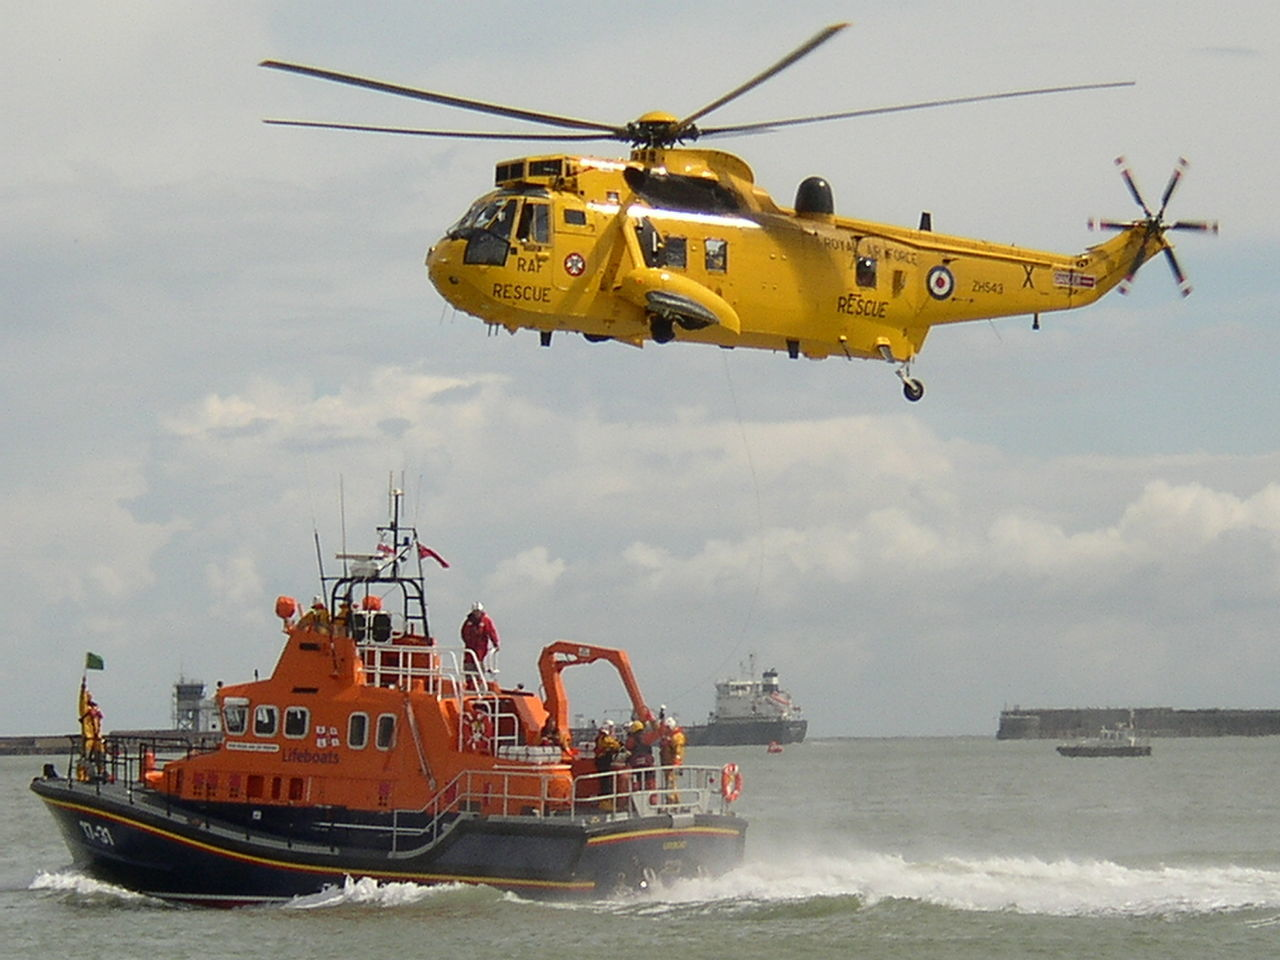 Westland Ws-61 Sea King And Lifeboat At Rescue Mission